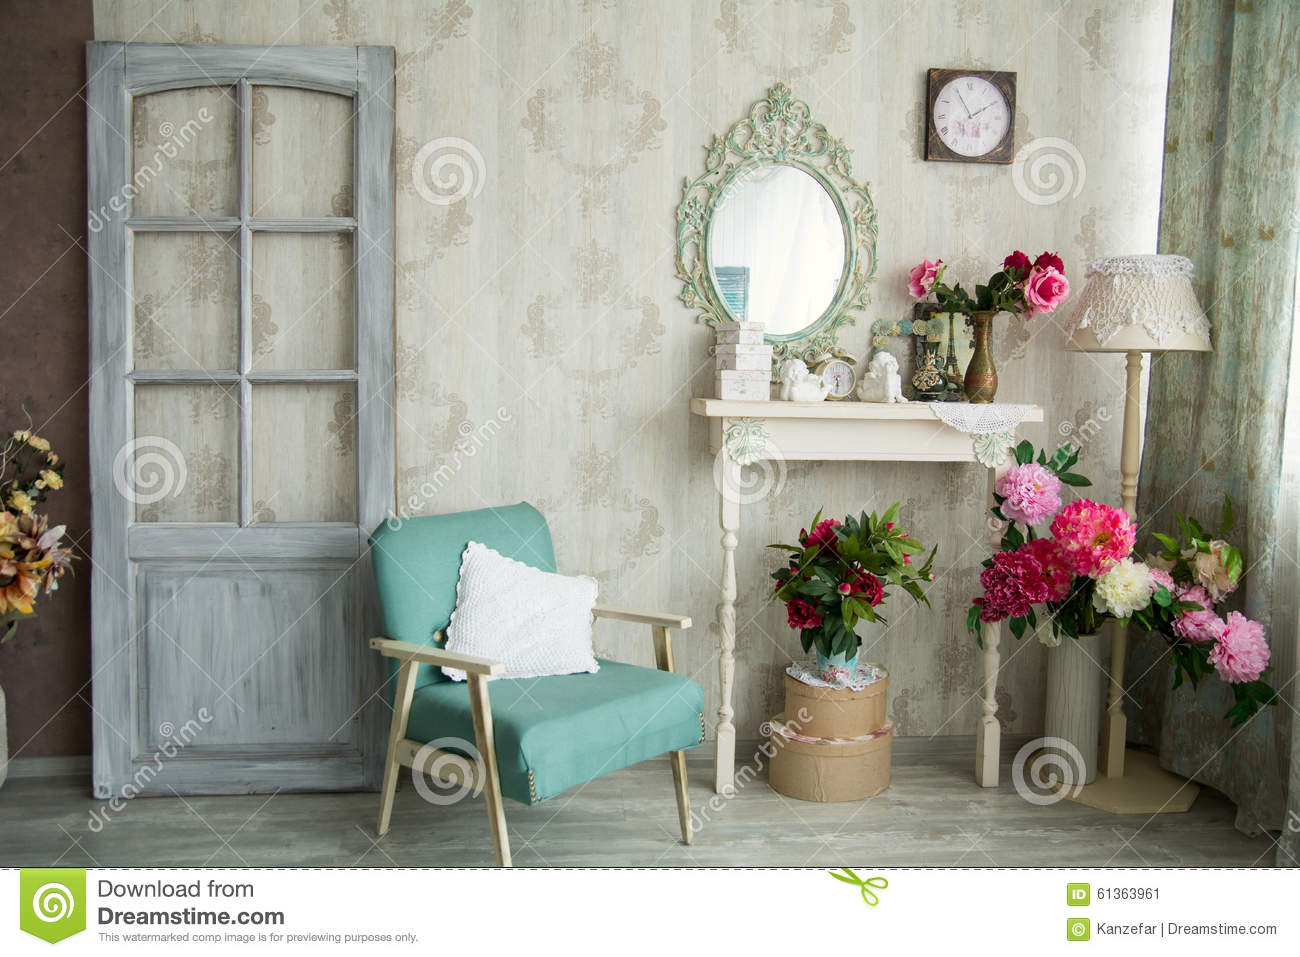 Vintage Country House Interior With Mirror And A Table With A Va Stock Image  Image of decor